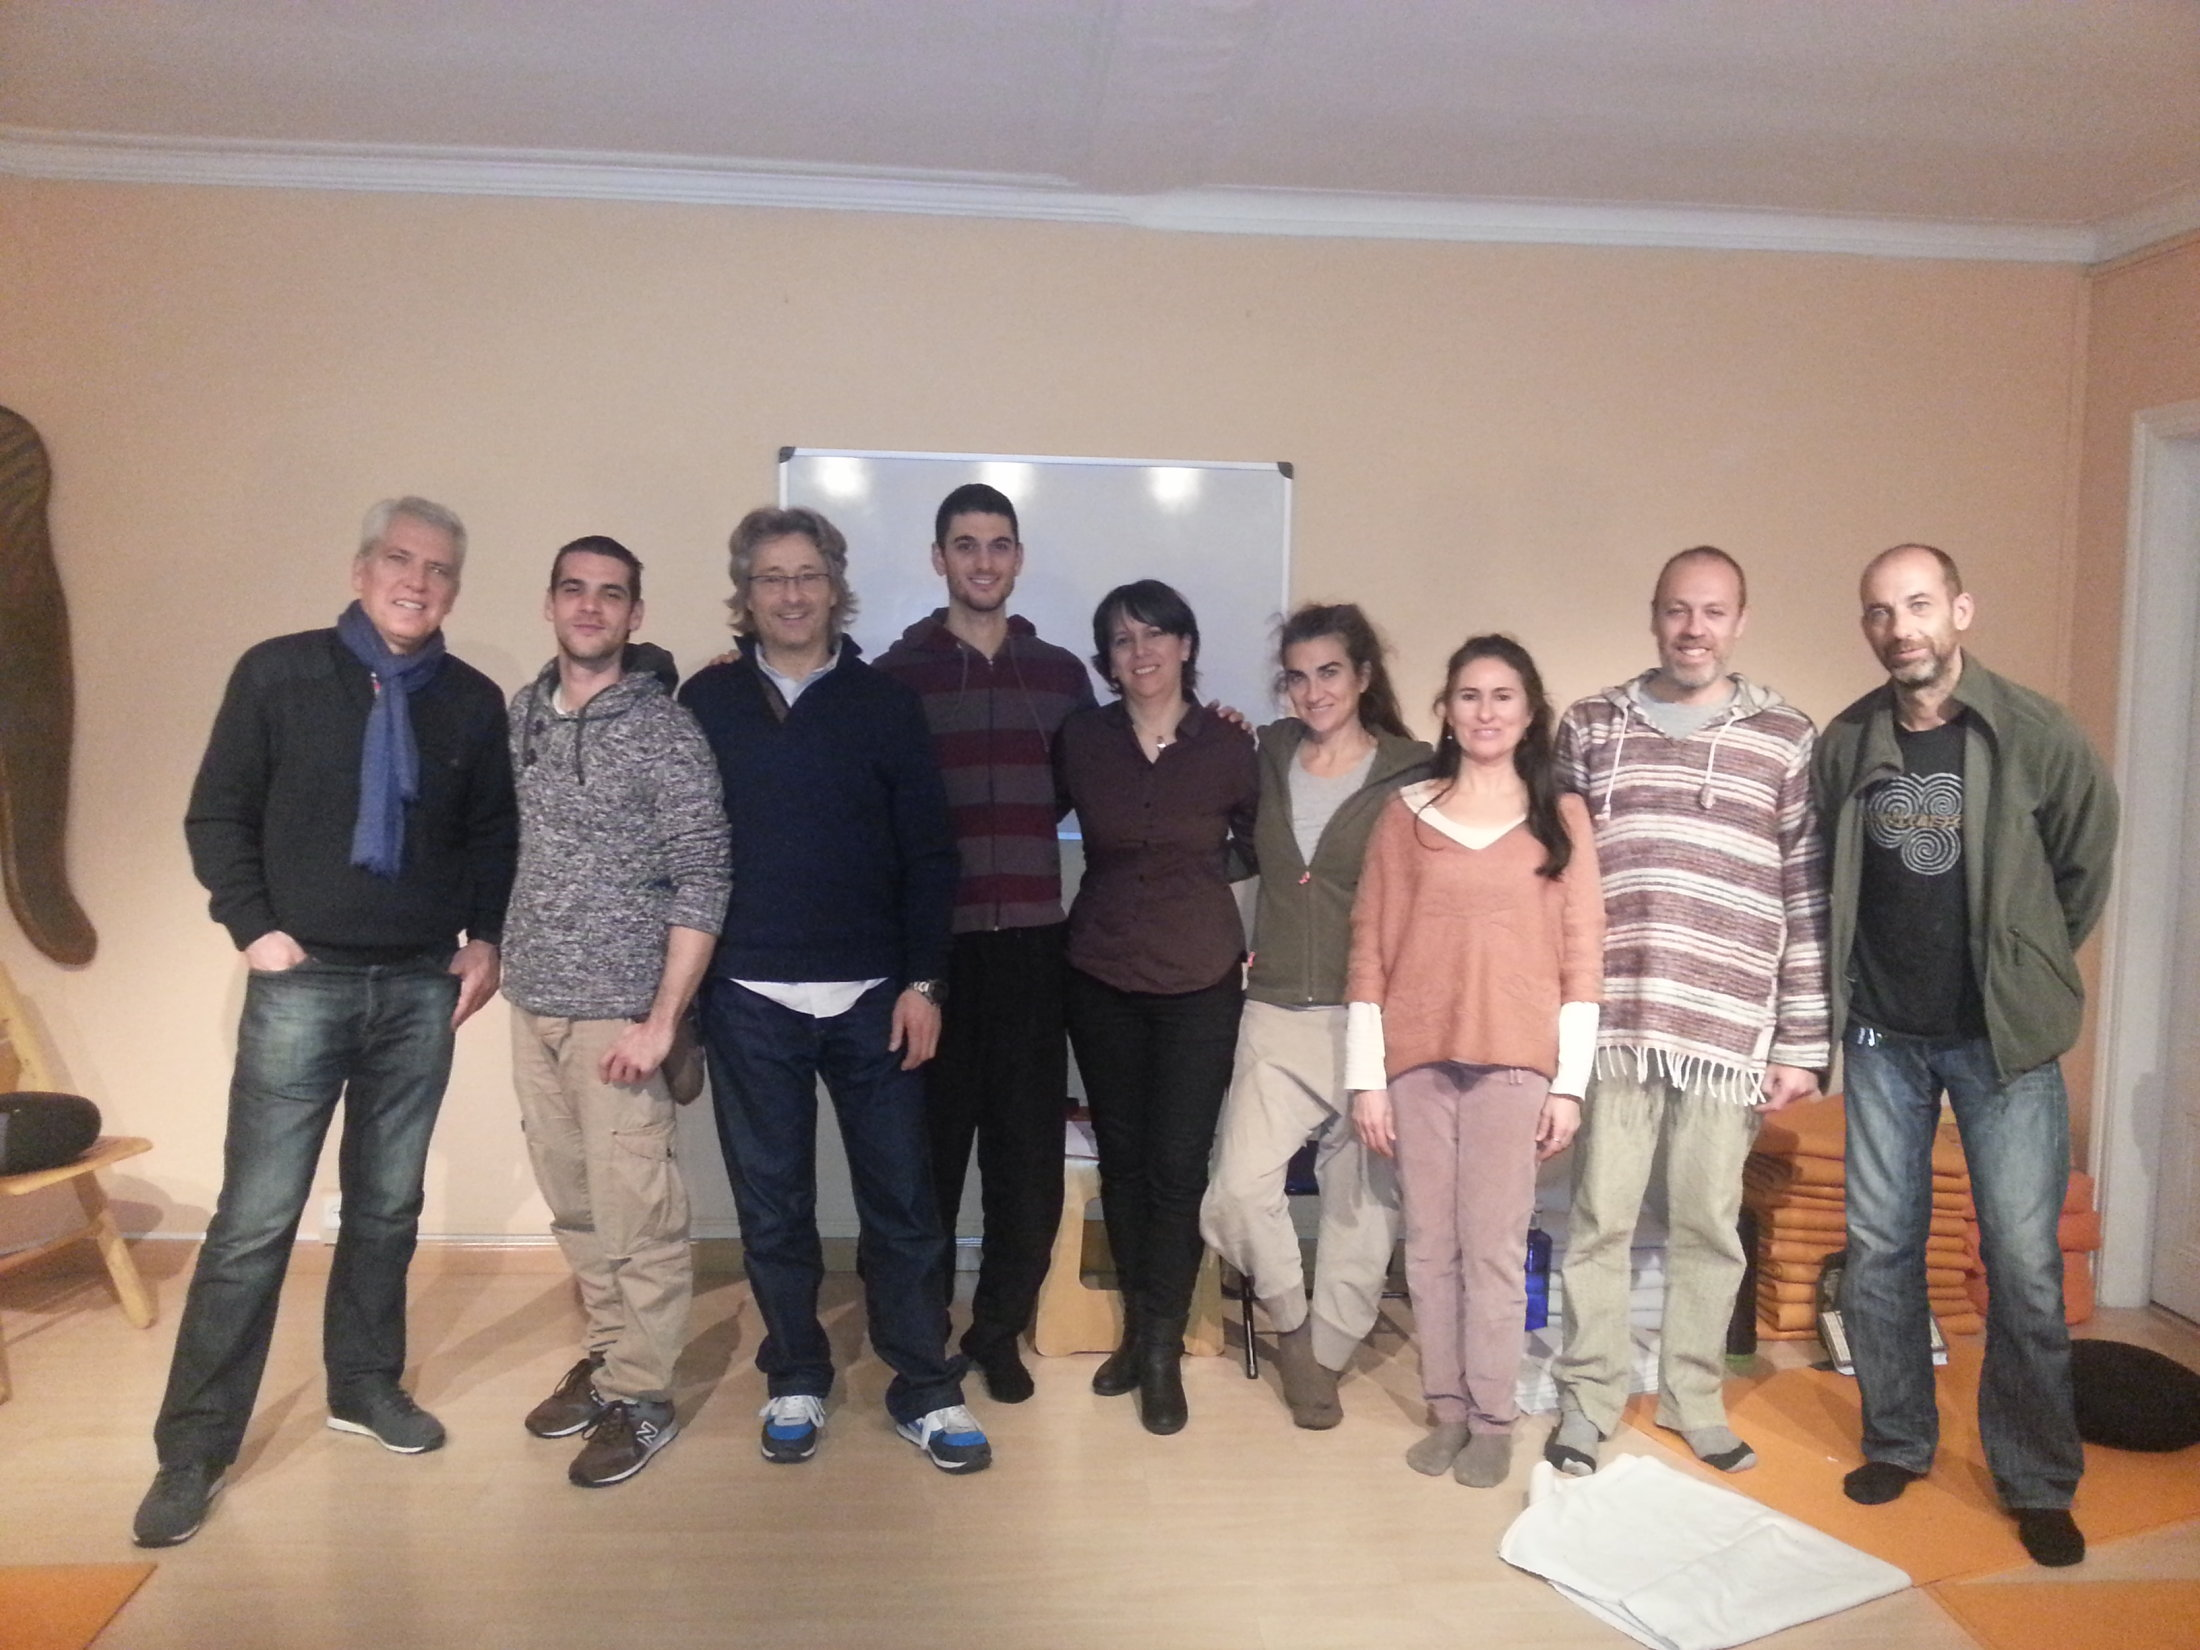 Curso EFT Tapping Barcelona 19-01-14 B